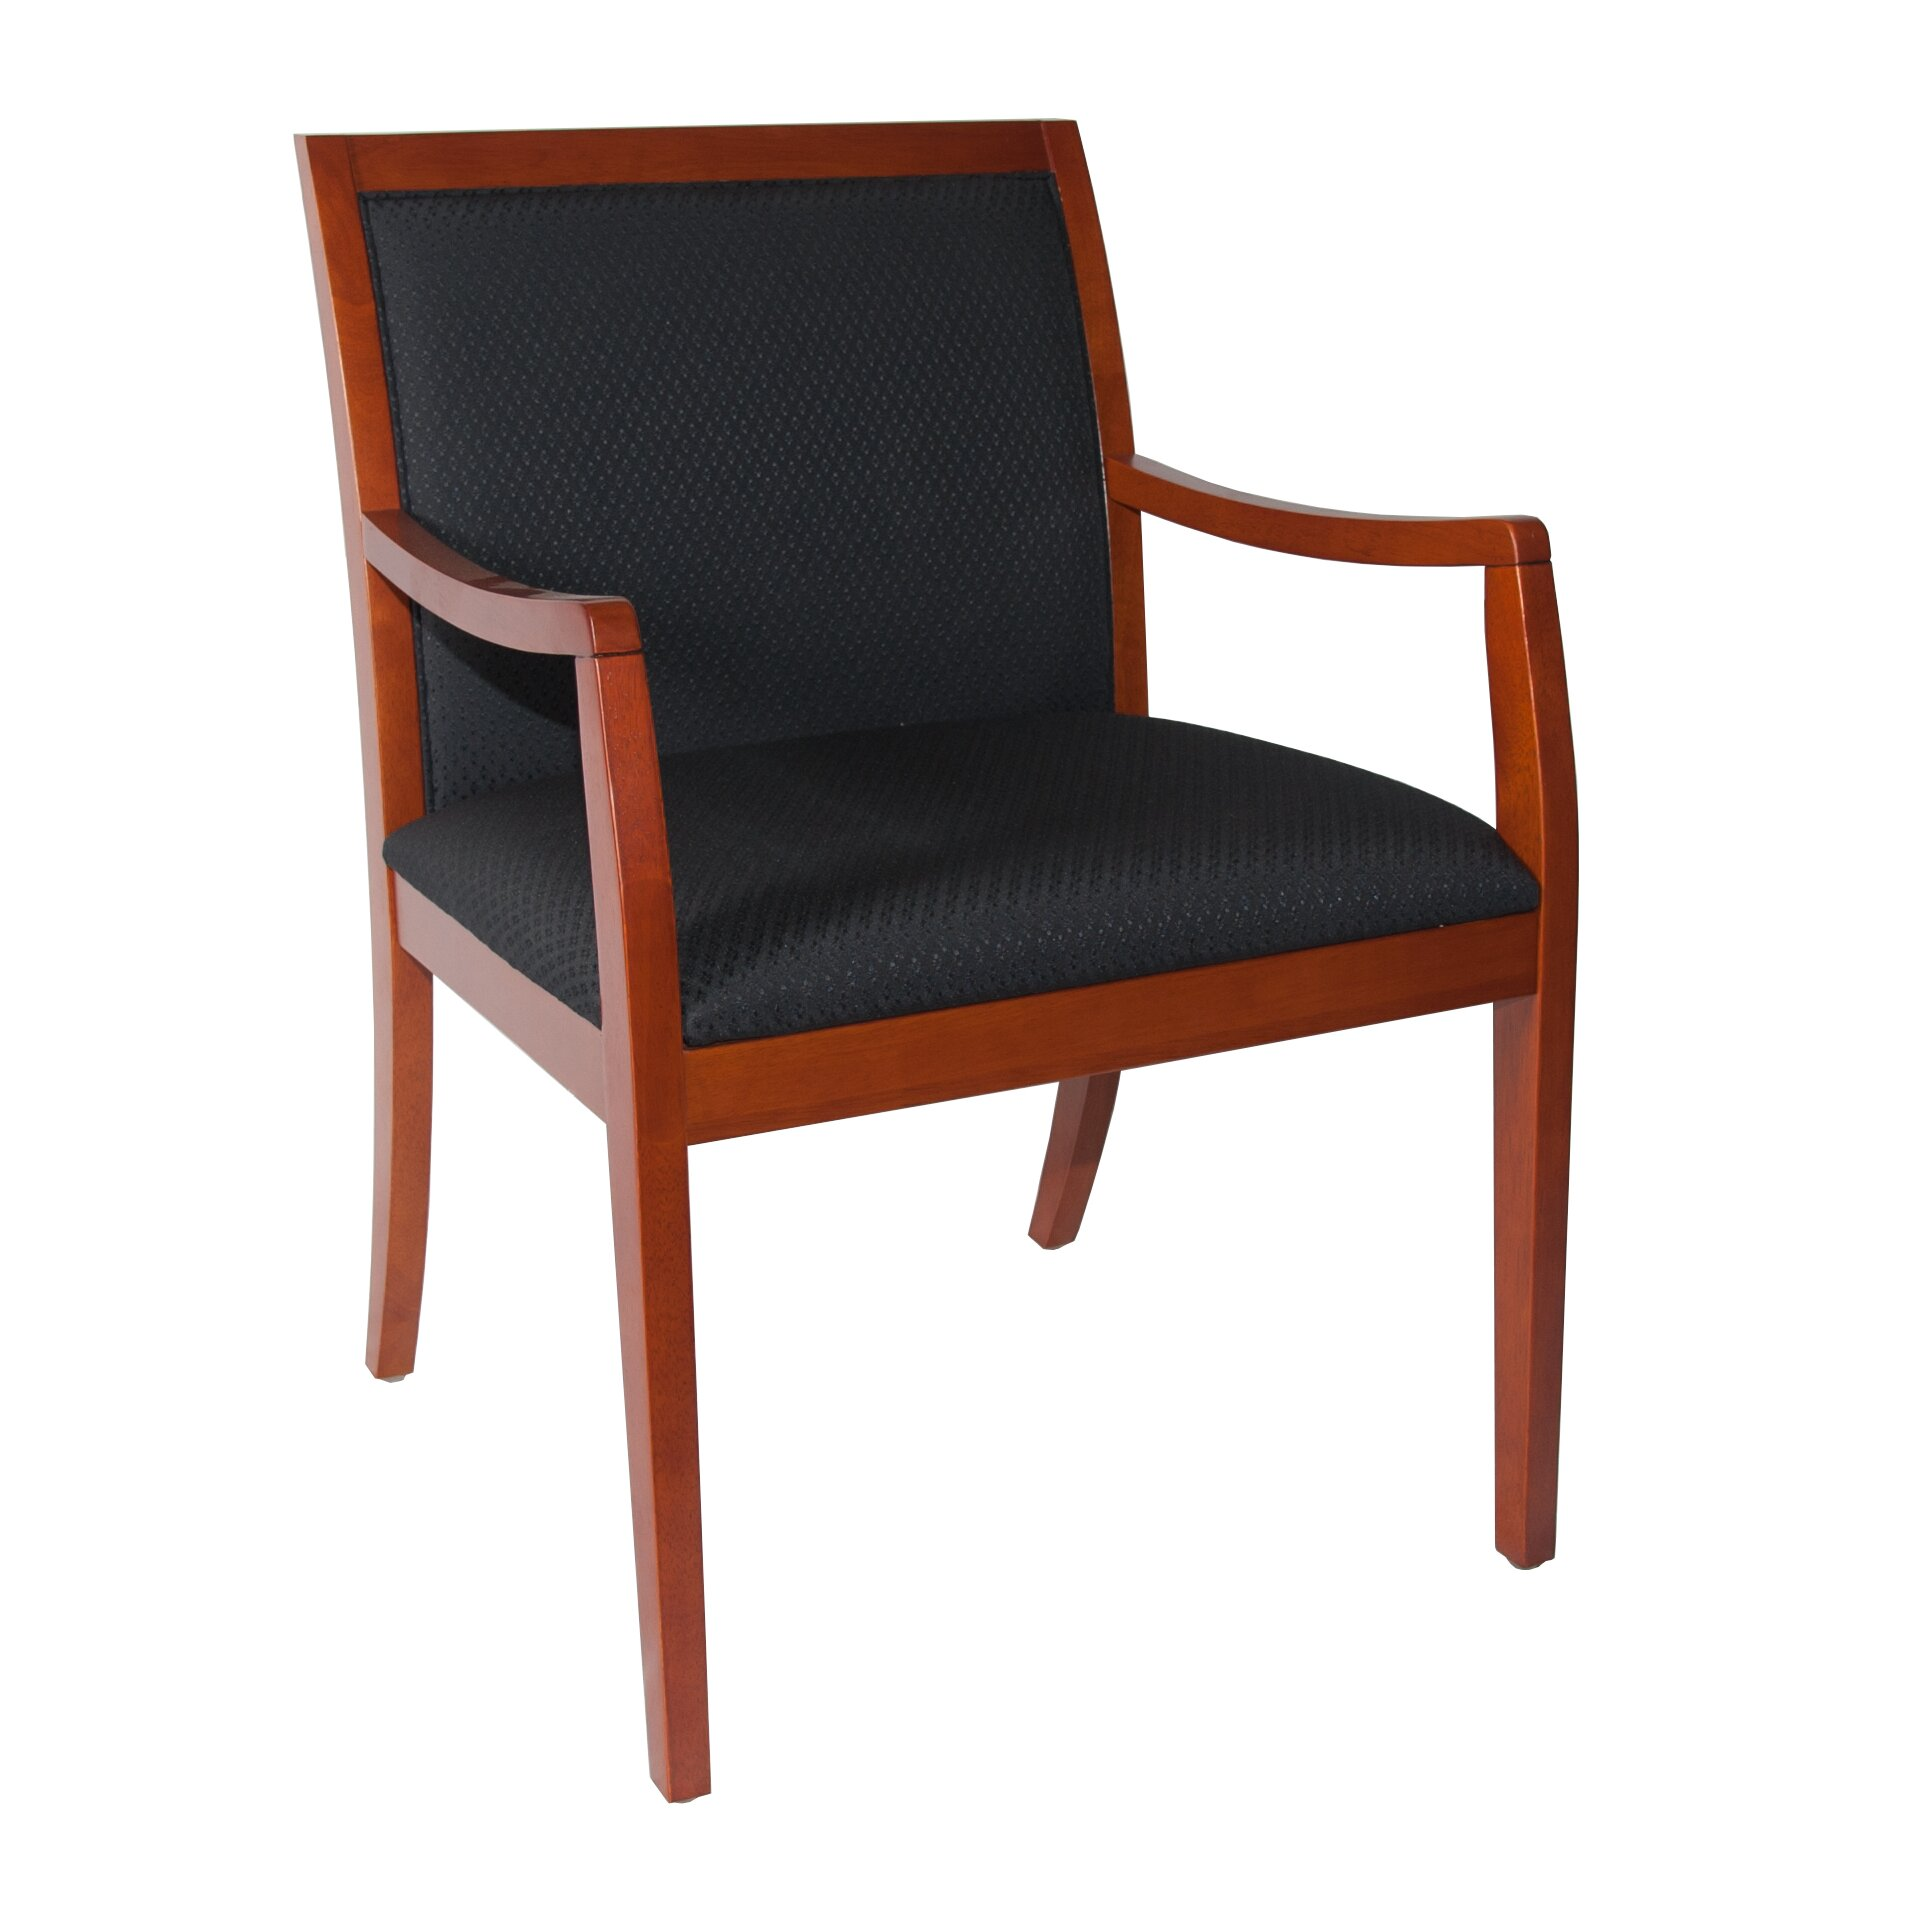 Furniture Design Group Rex Wooden Lounge Chair